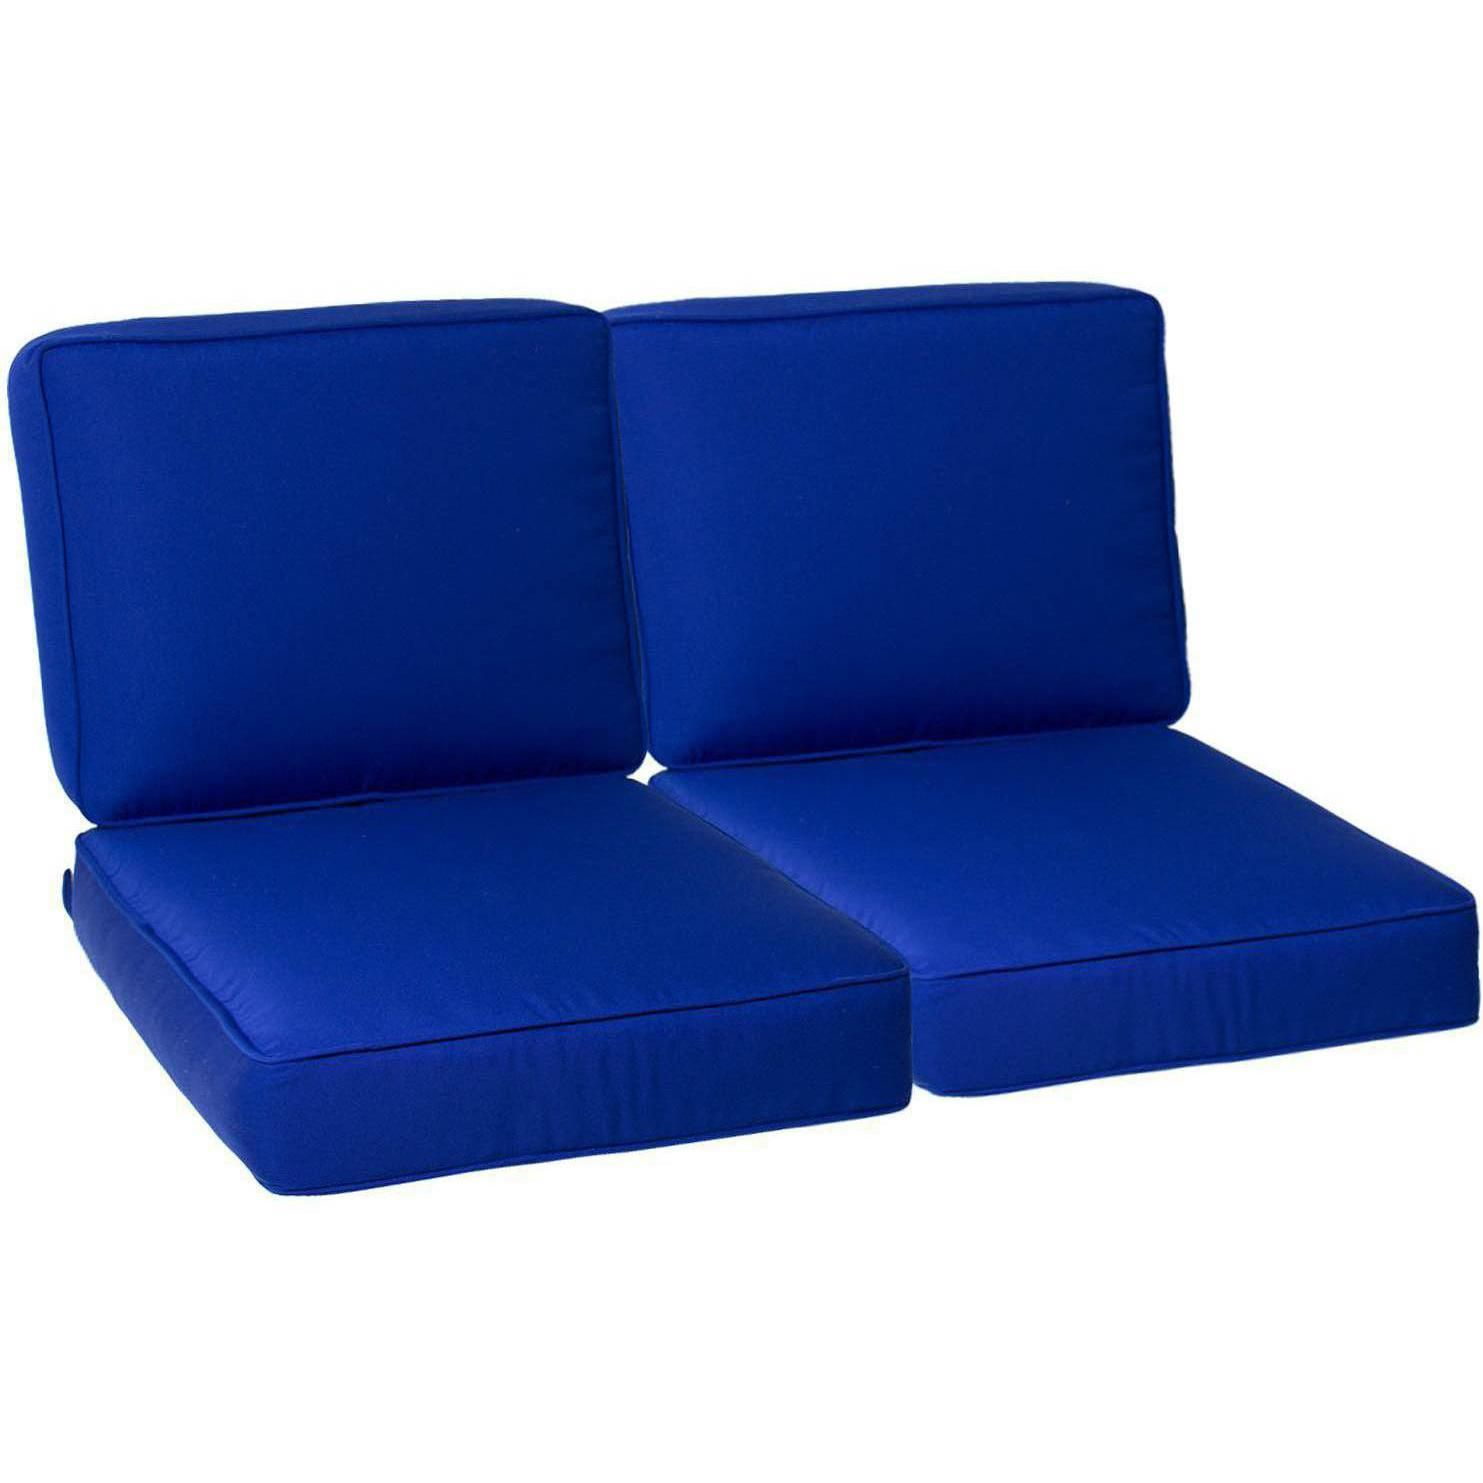 Genial UltimatePatio.com Large Replacement Outdoor Loveseat Cushion Set With  Piping   Canvas True Blue UltimatePatio.com Large Replacement Outdoor  Loveseat Cushion ...